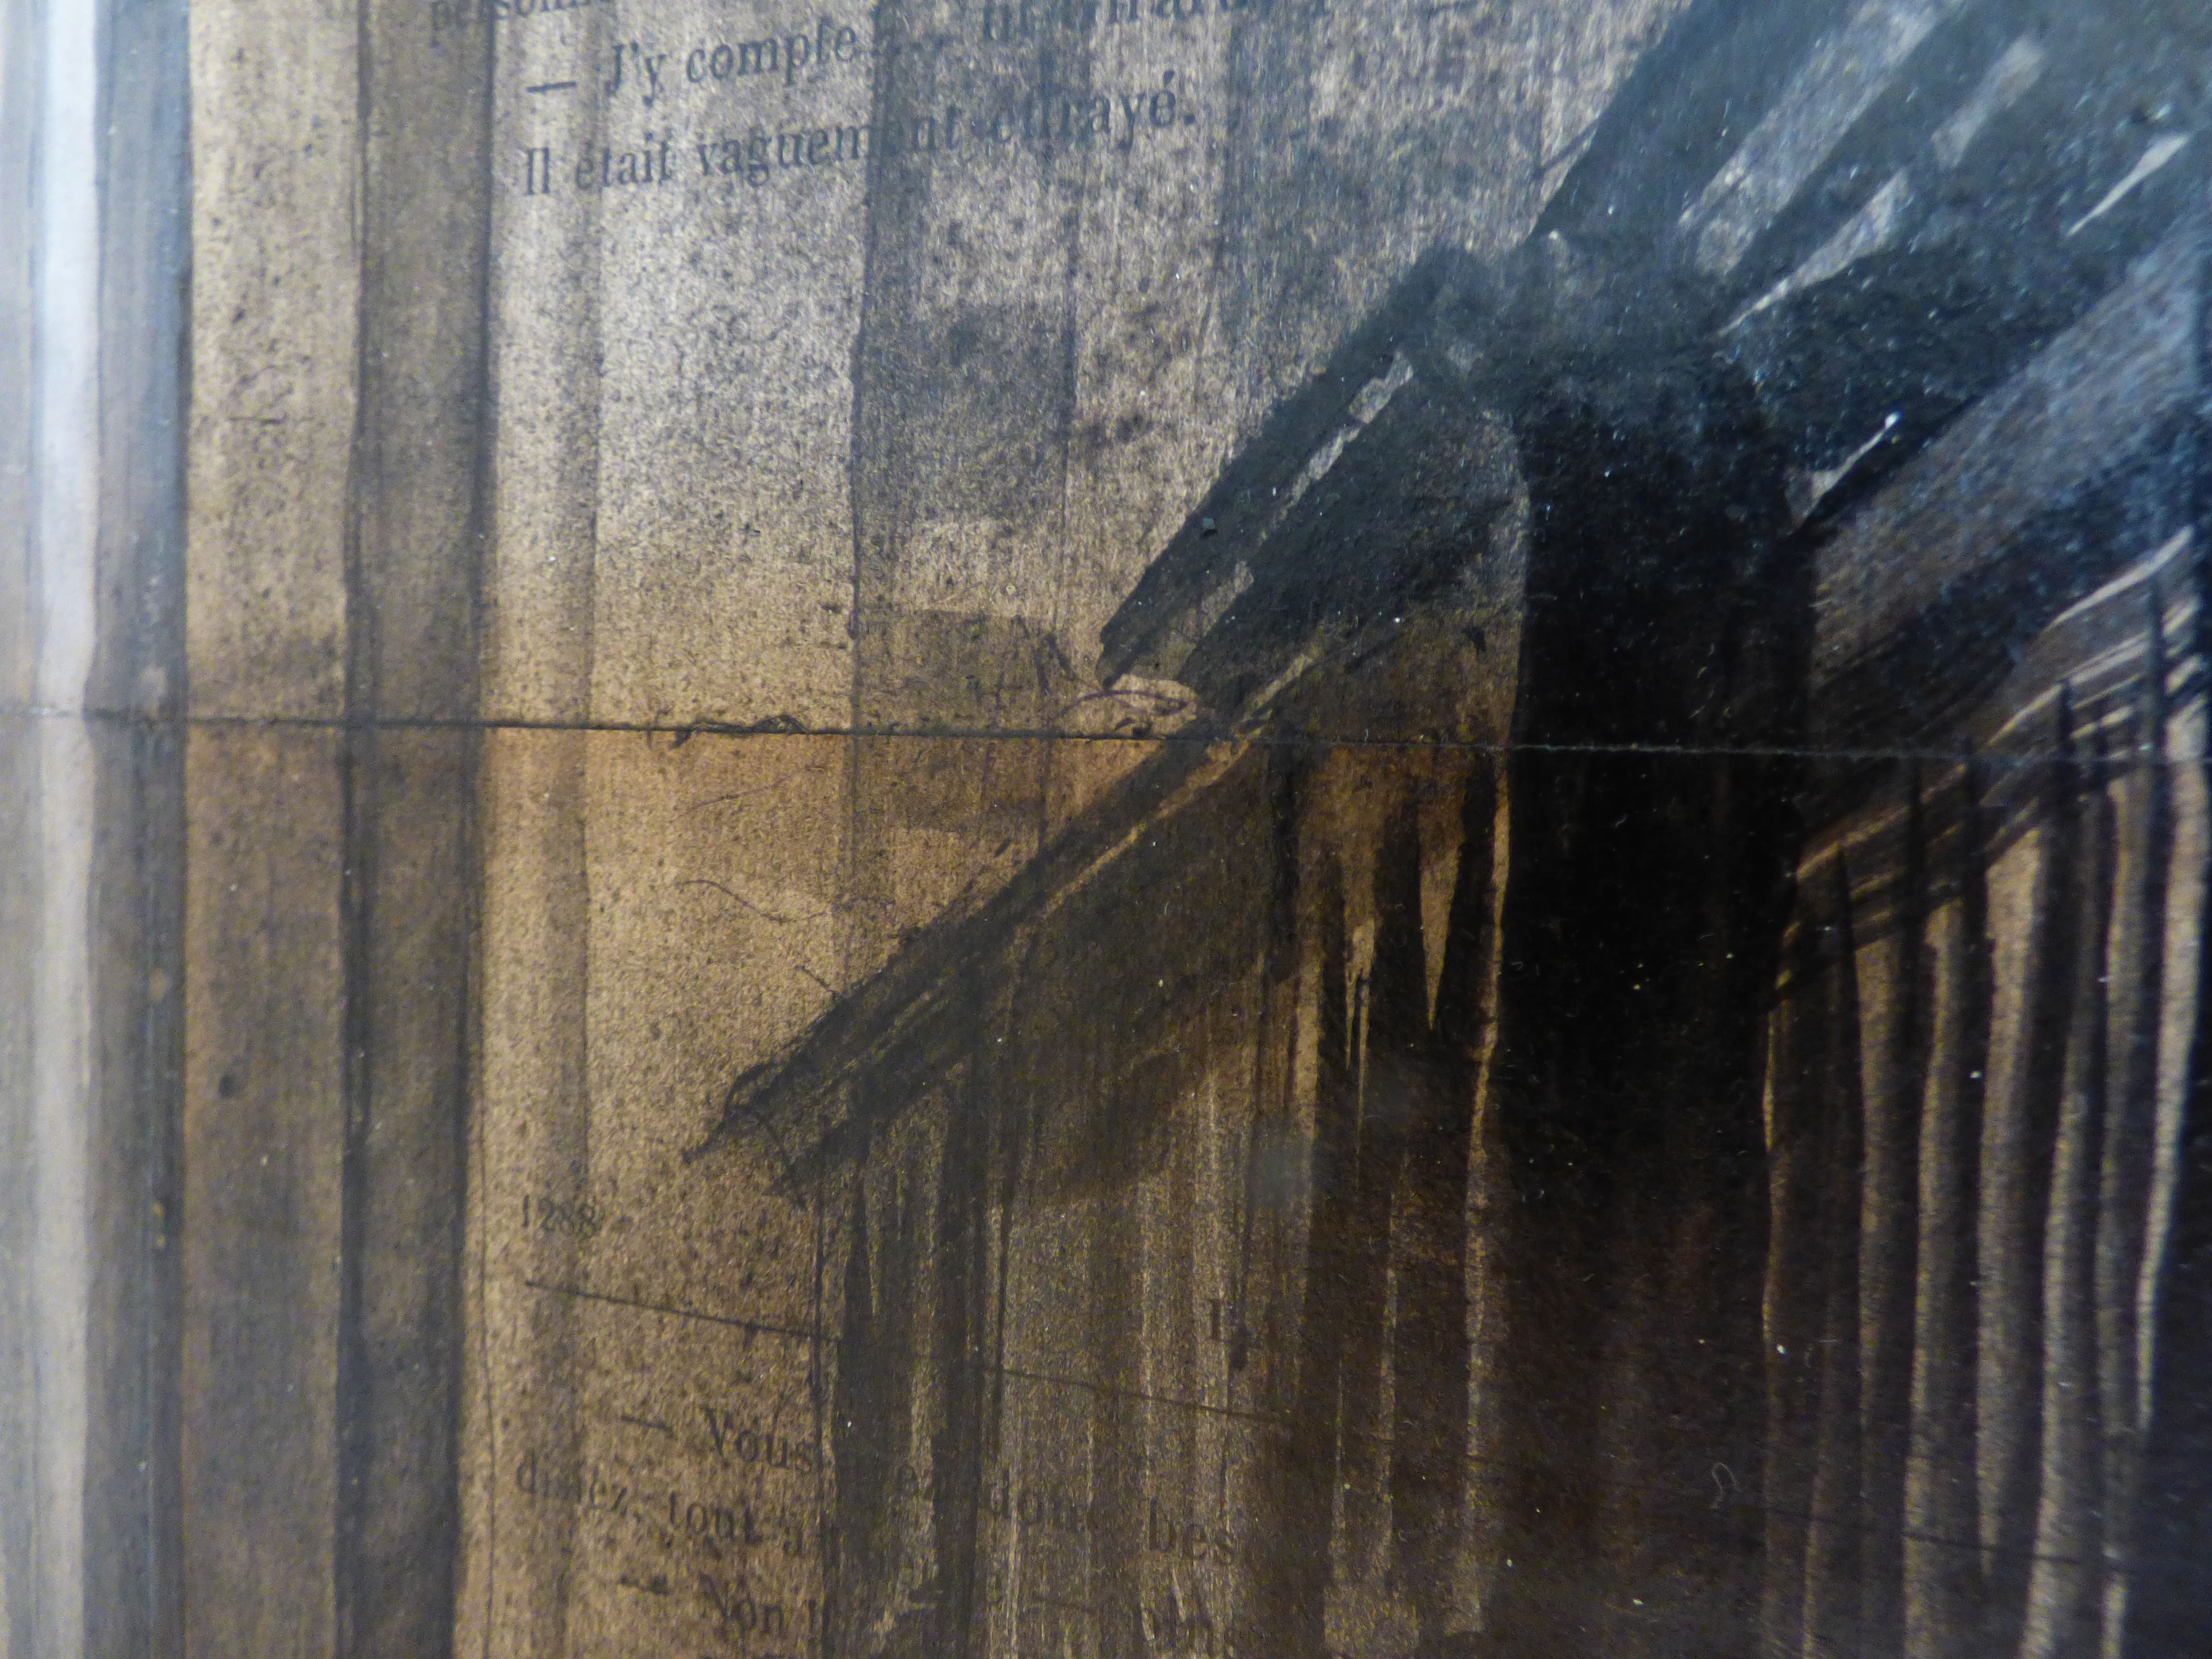 Prince St and Broadway,Guillaume Chansarel,Dessin, detail 2